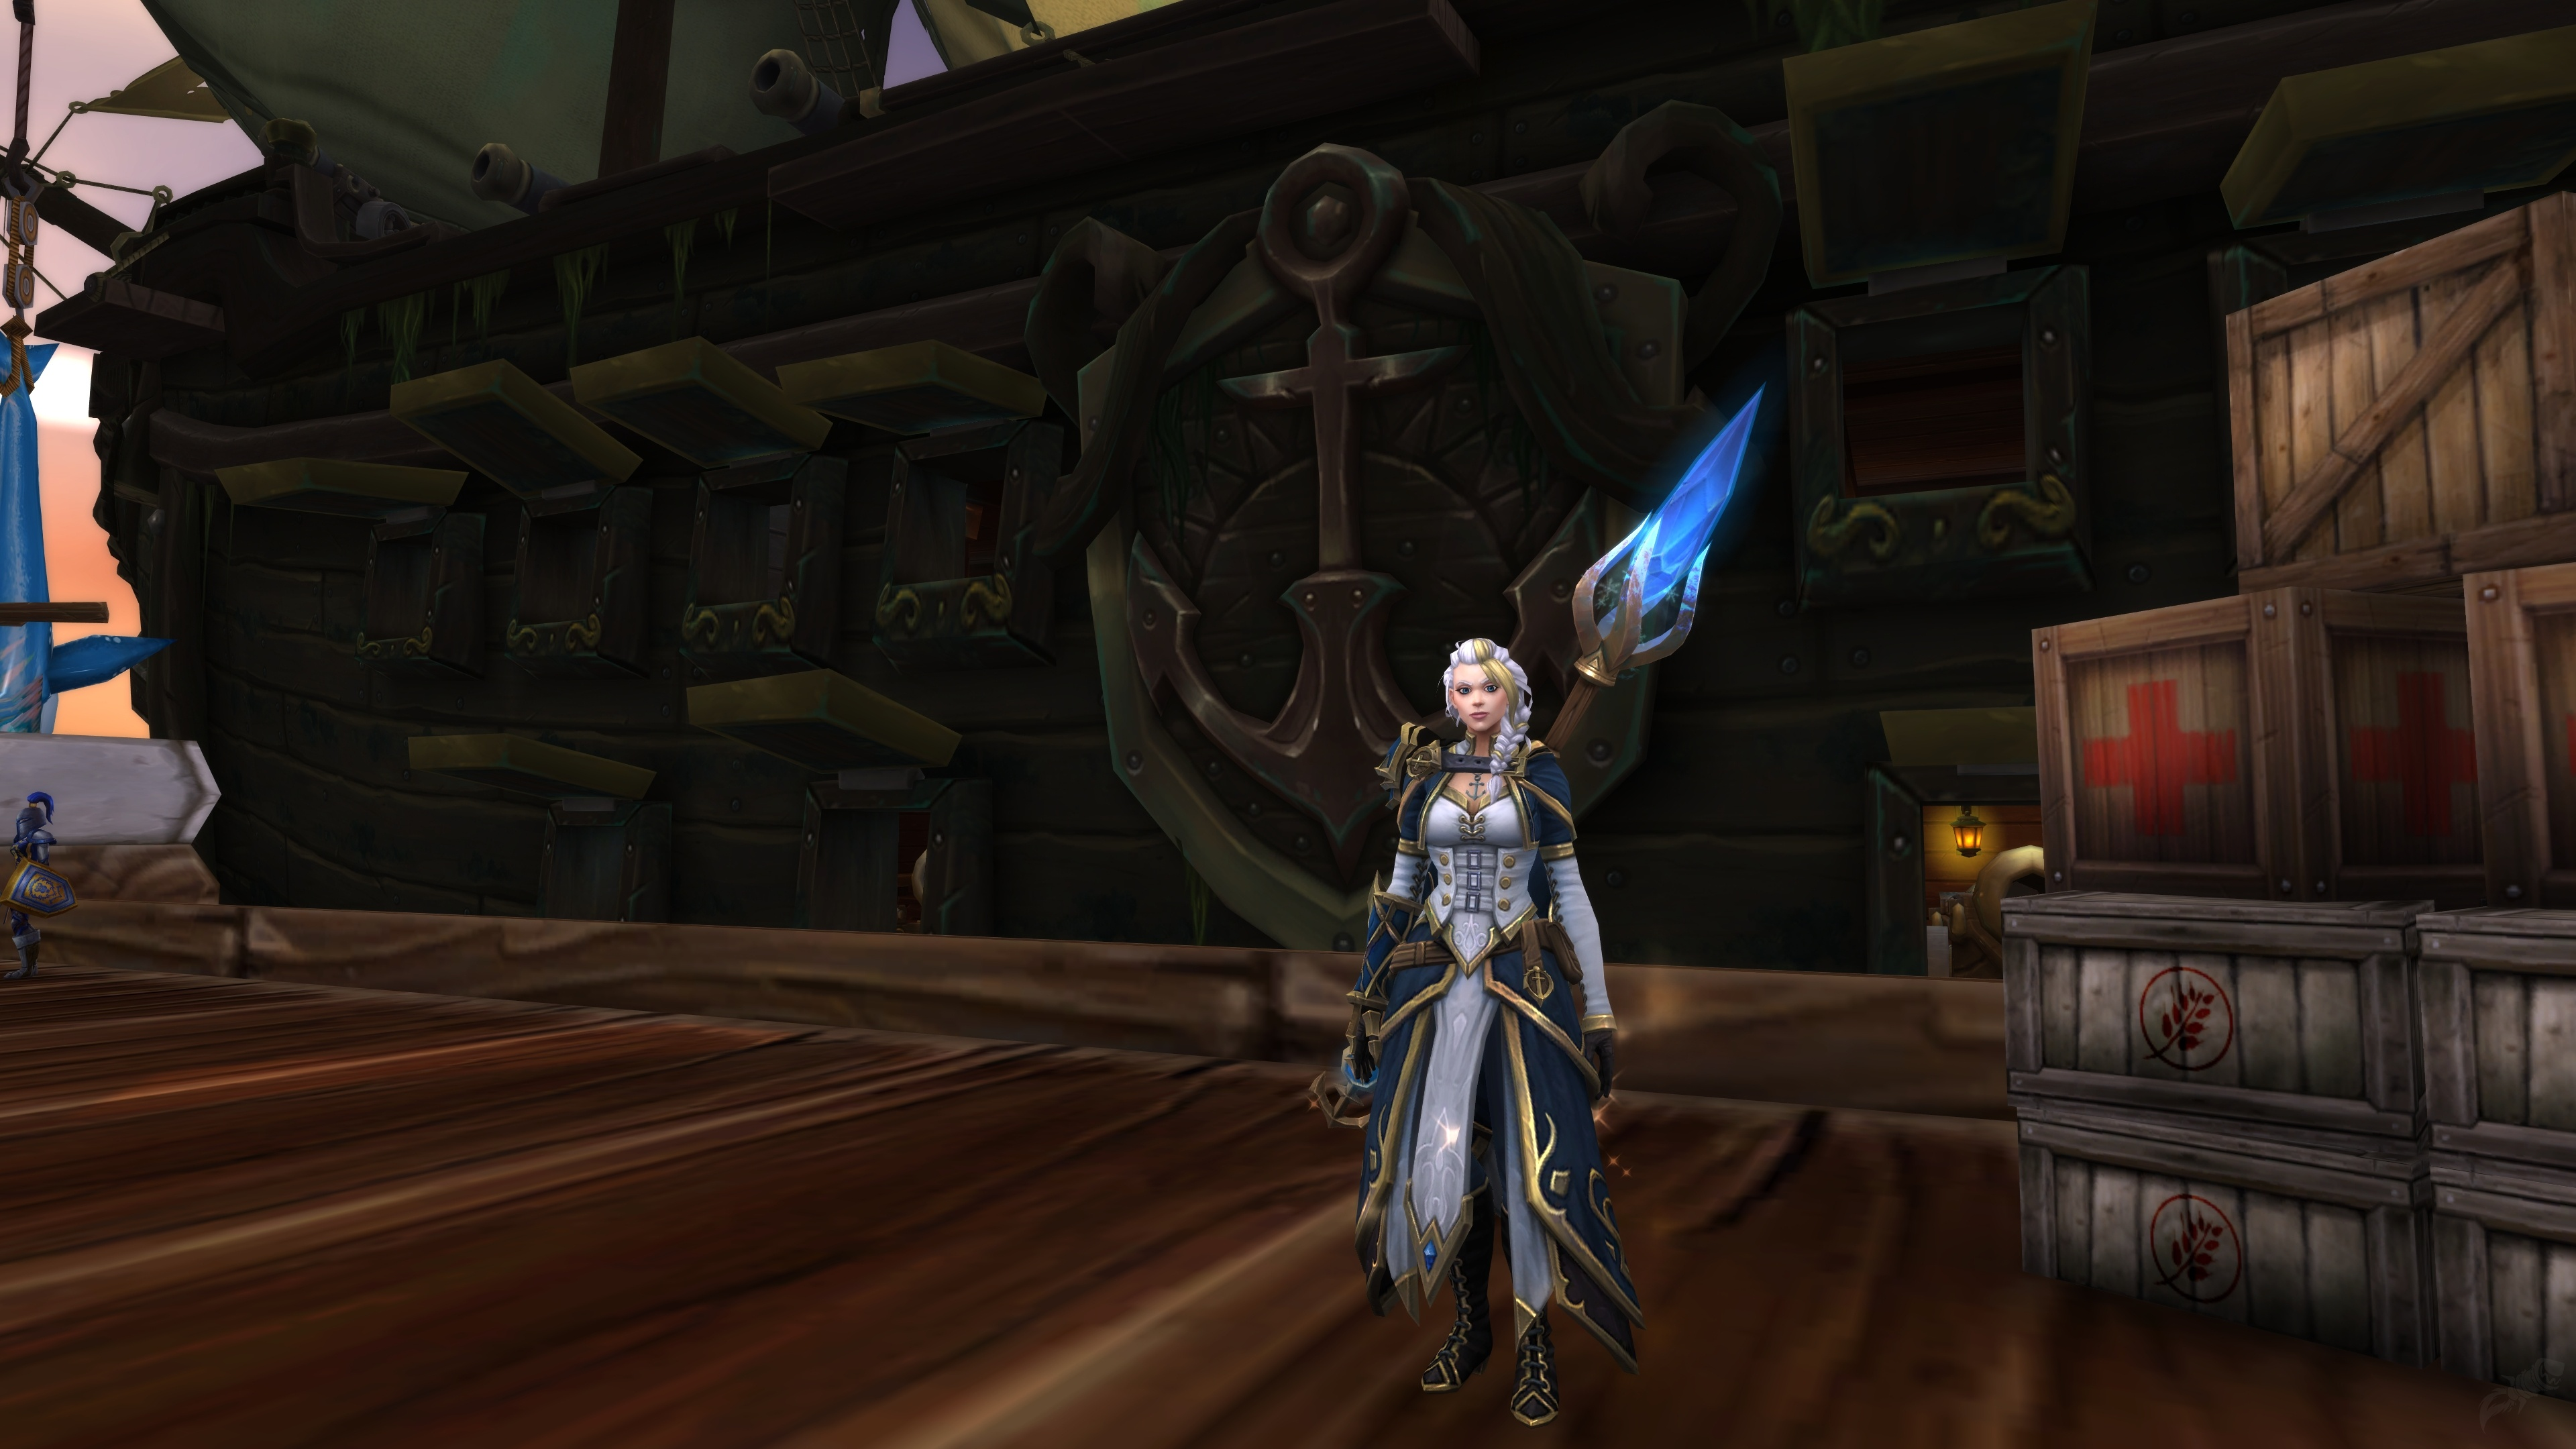 Quest Near Me >> The Nation of Kul Tiras - Quest - World of Warcraft